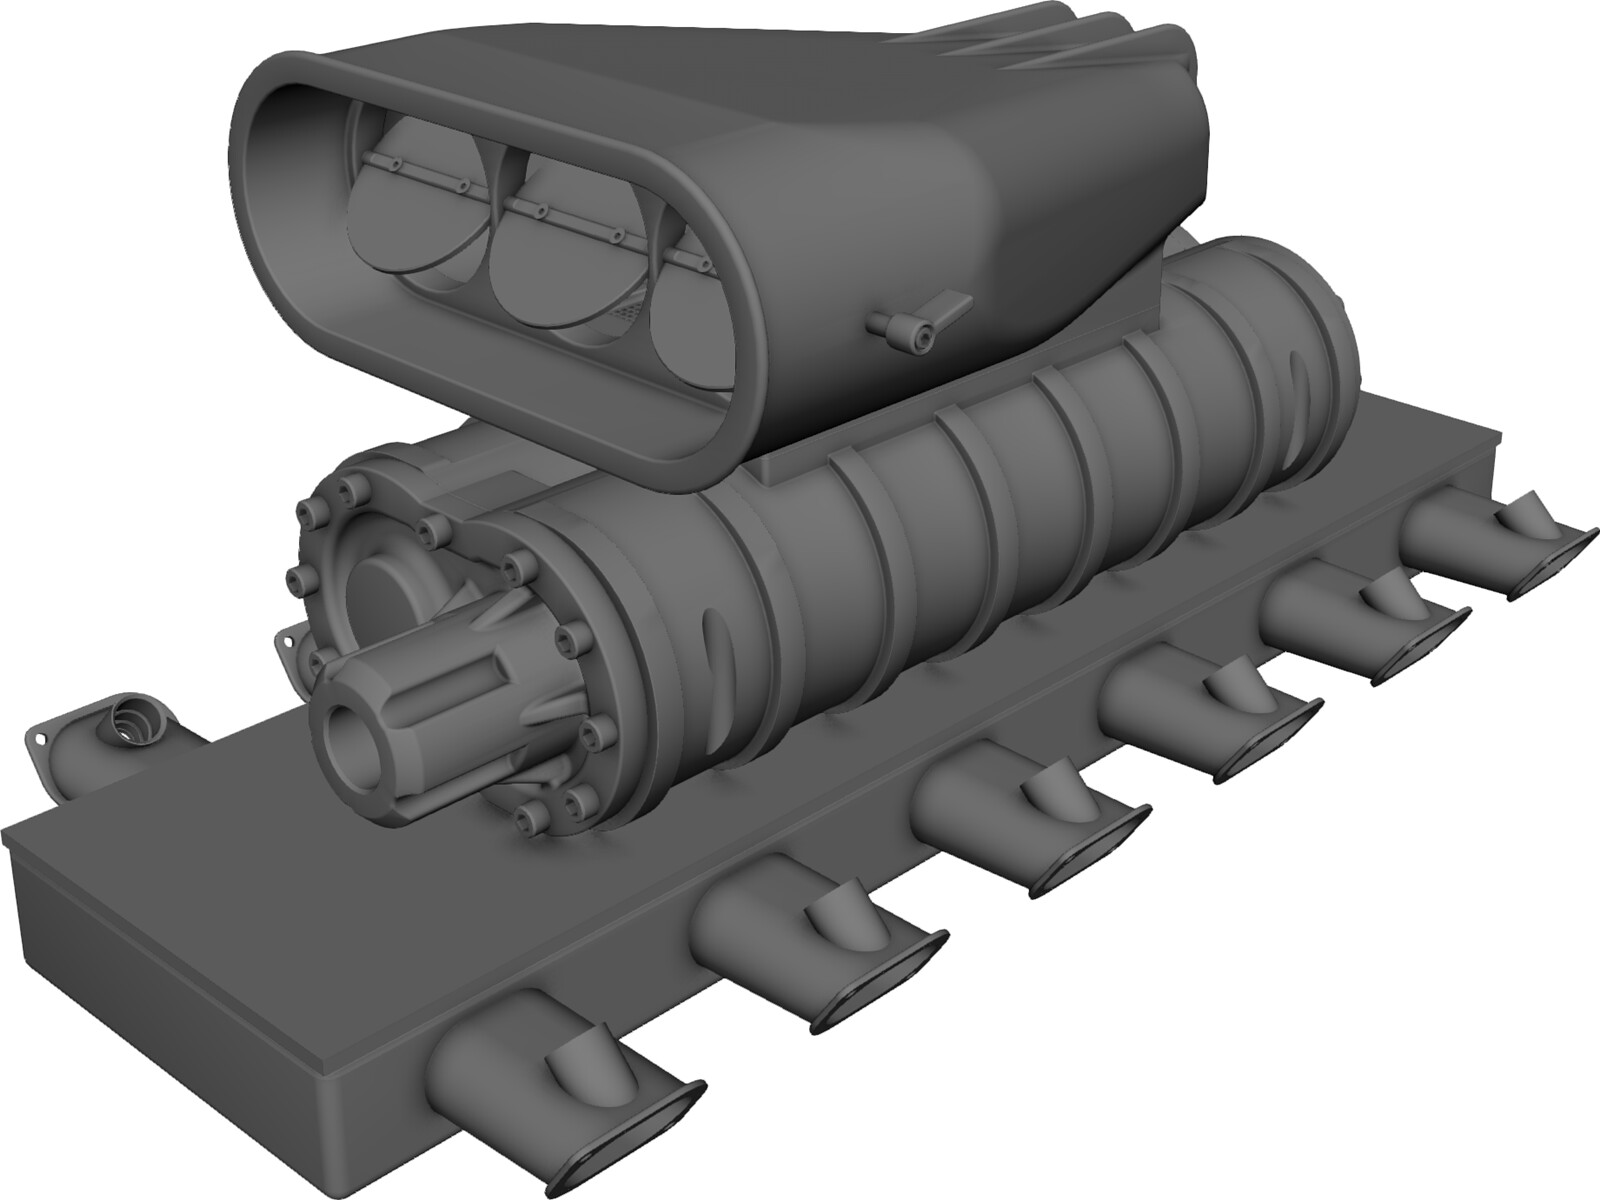 Intake Manifold With Supercharger 3d Cad Model 3d Cad